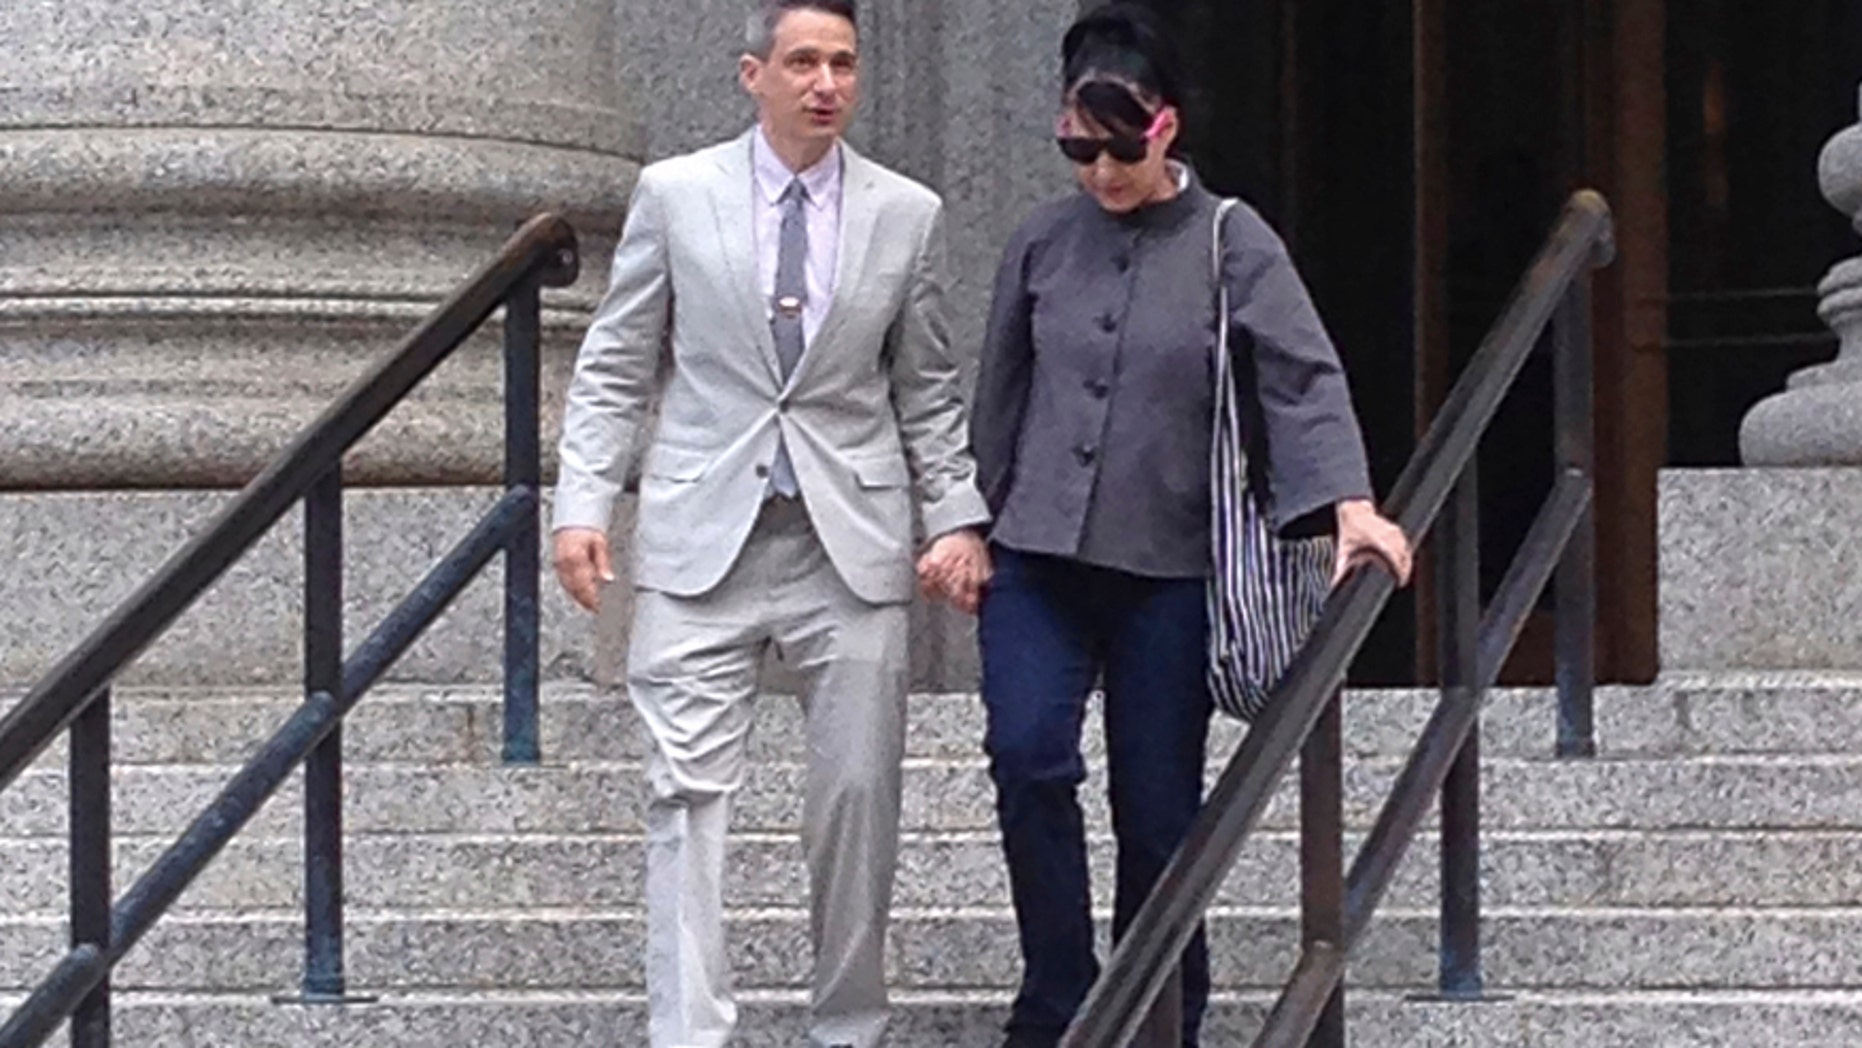 "FILE - In this Tuesday, May 27, 2014 file photo, Beastie Boys rapper Adam ""Ad-Rock"" Horovitz leaves federal court in Manhattan with his wife Kathleen Hanna after testifying at a copyright trial stemming from a lawsuit his musical group brought against a beverage maker over the use of five of their songs in a video, in New York.  The Beastie Boys want to force the maker of Monster Energy drink to pay nearly $2.4 million in legal fees and costs so the rappers $1.7 million jury award is not dwarfed by expenses in a copyright violation case, lawyers say. A Manhattan federal court jury awarded the group most of the $2 million it requested at a 2014 trial, but that was not enough to cover costs that lawyers said were worsened by the actions of the Corona, California-based Monster Energy Co., the musicians lawyers said in papers filed in Manhattan federal court."